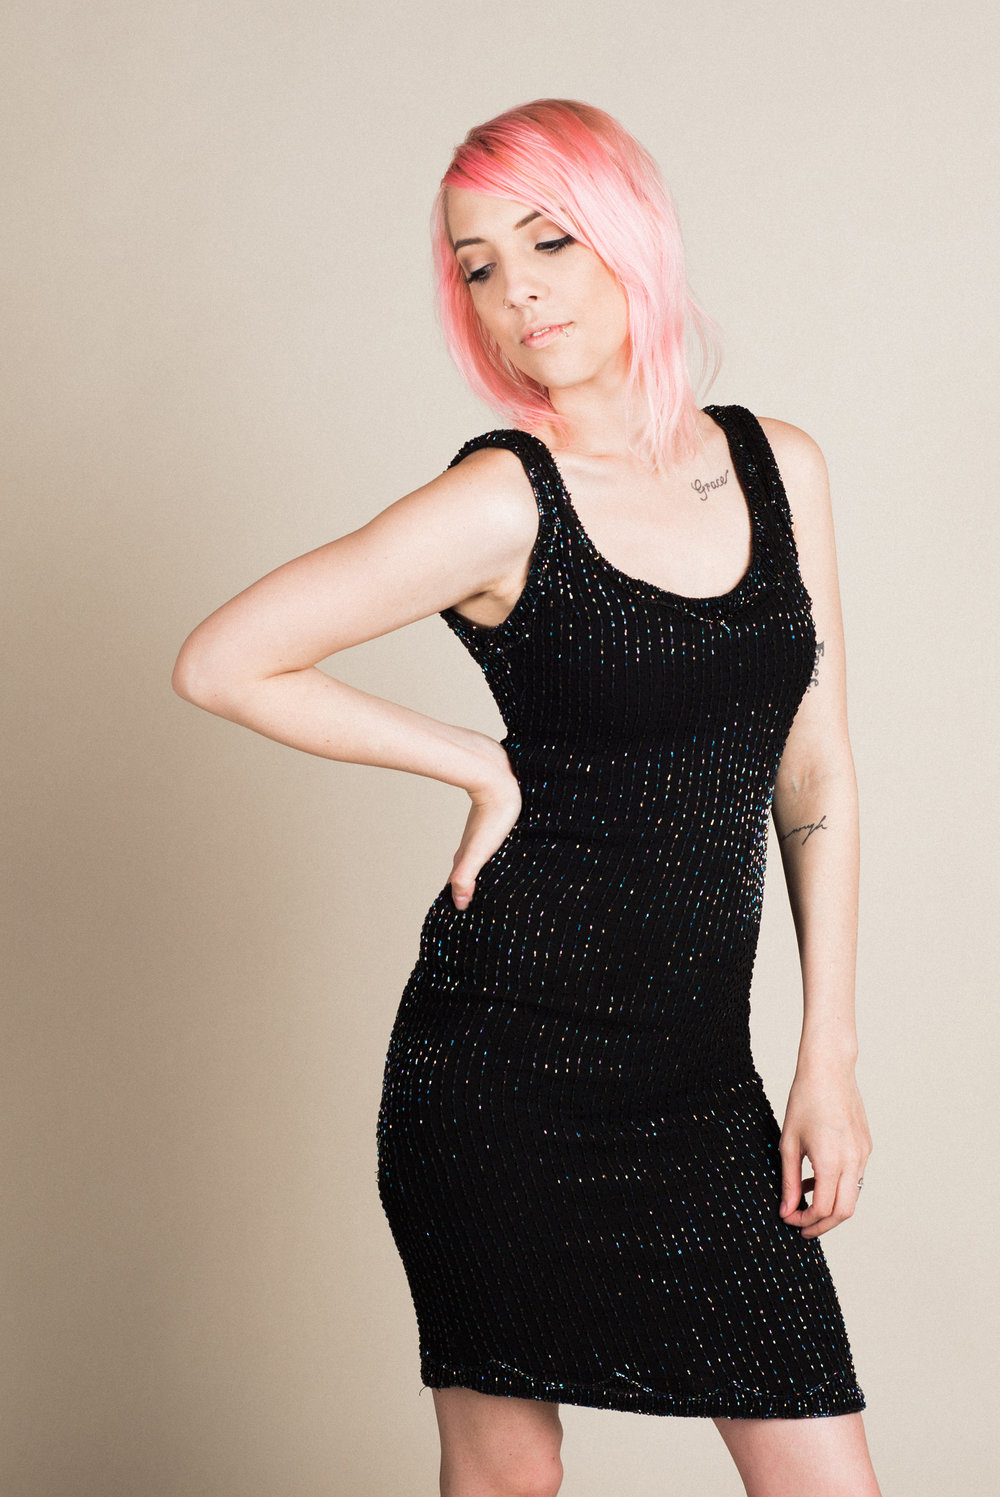 Vintage Beaded Dress (XS) | Modeled by Laura